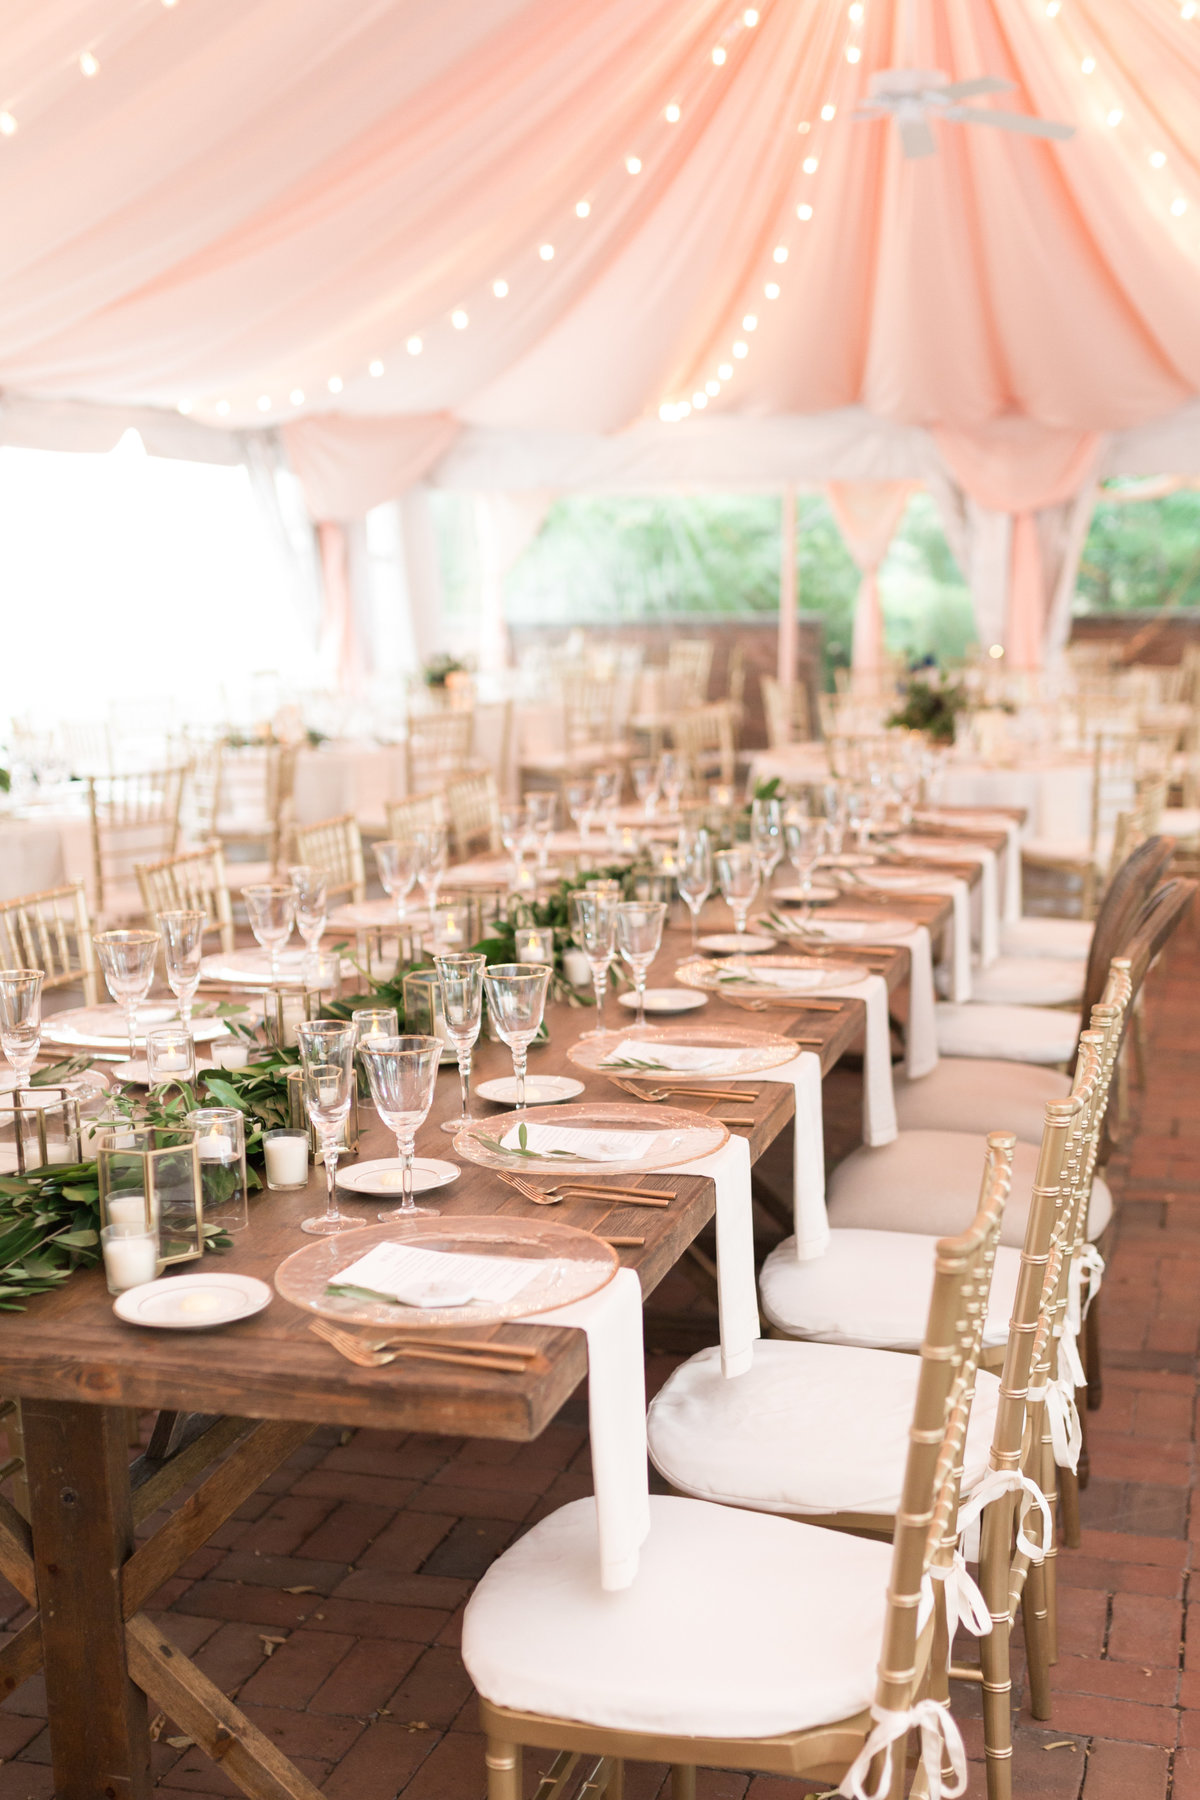 Maura Bassman - Wedding Event and Design - Cincinnati Wedding Planner - Photo - 11